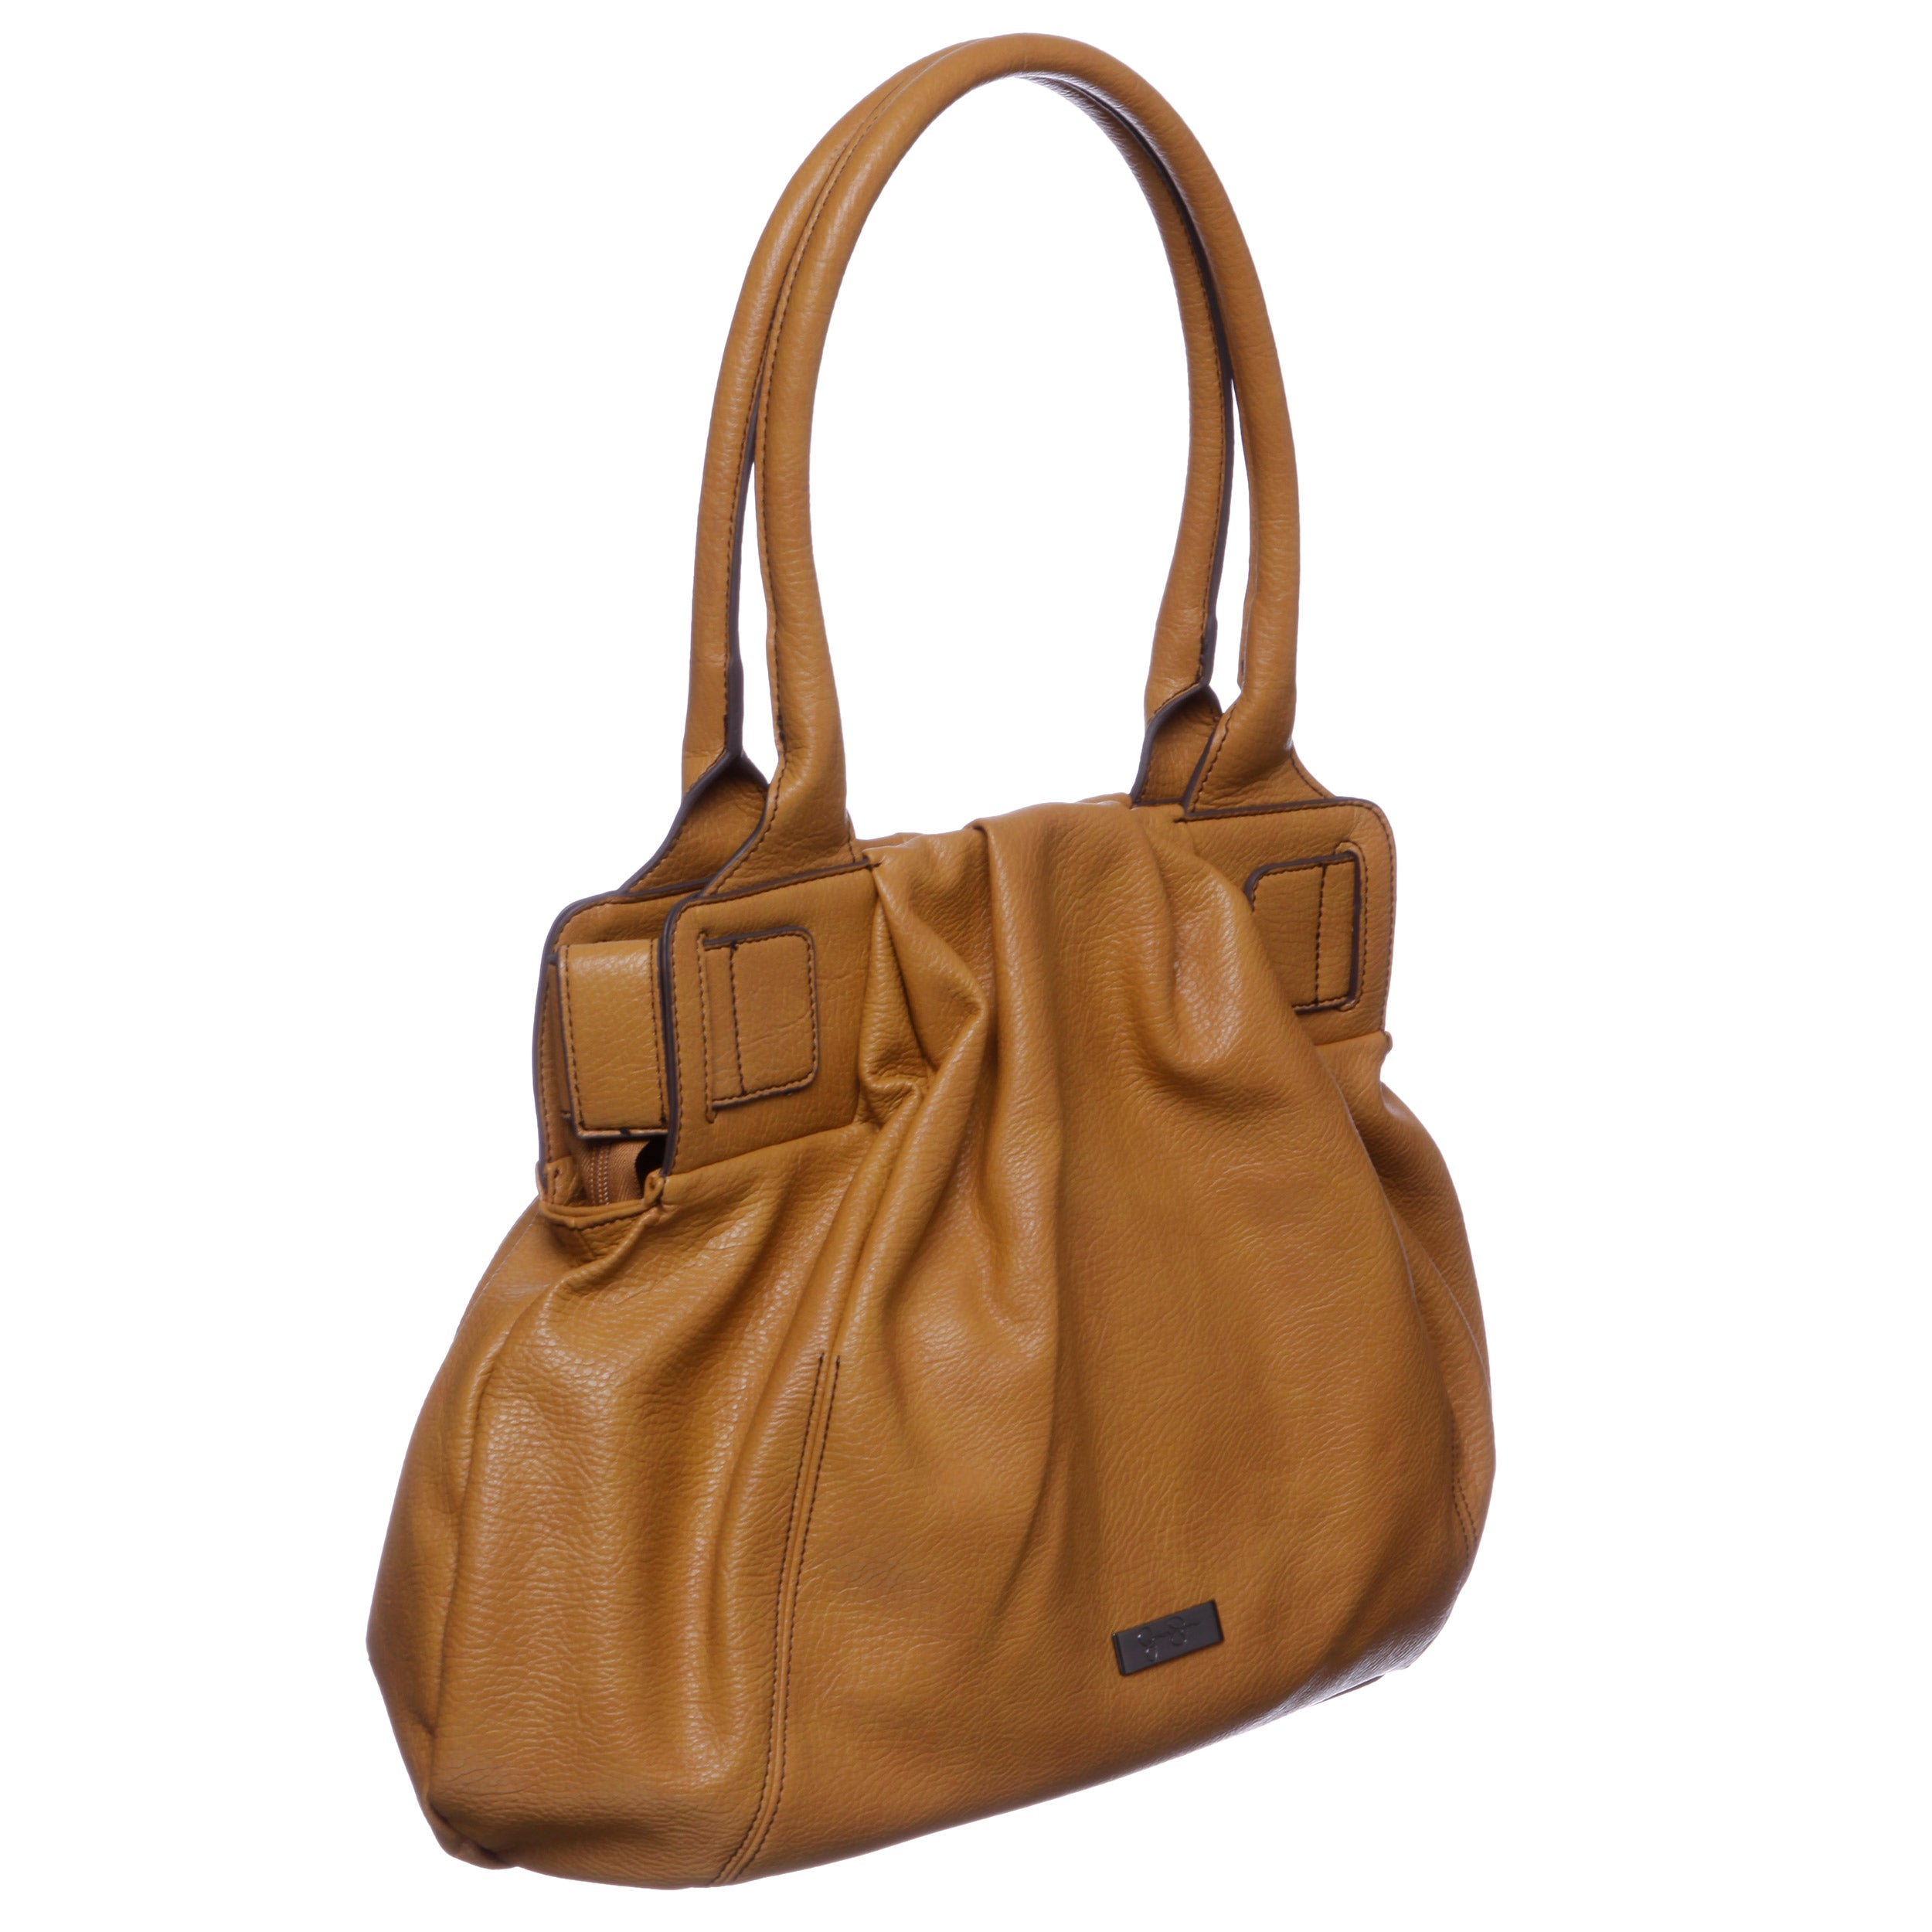 0718ddbb066182 Shop Jessica Simpson Lady Chick Buckle Tote Bag - Free Shipping ...